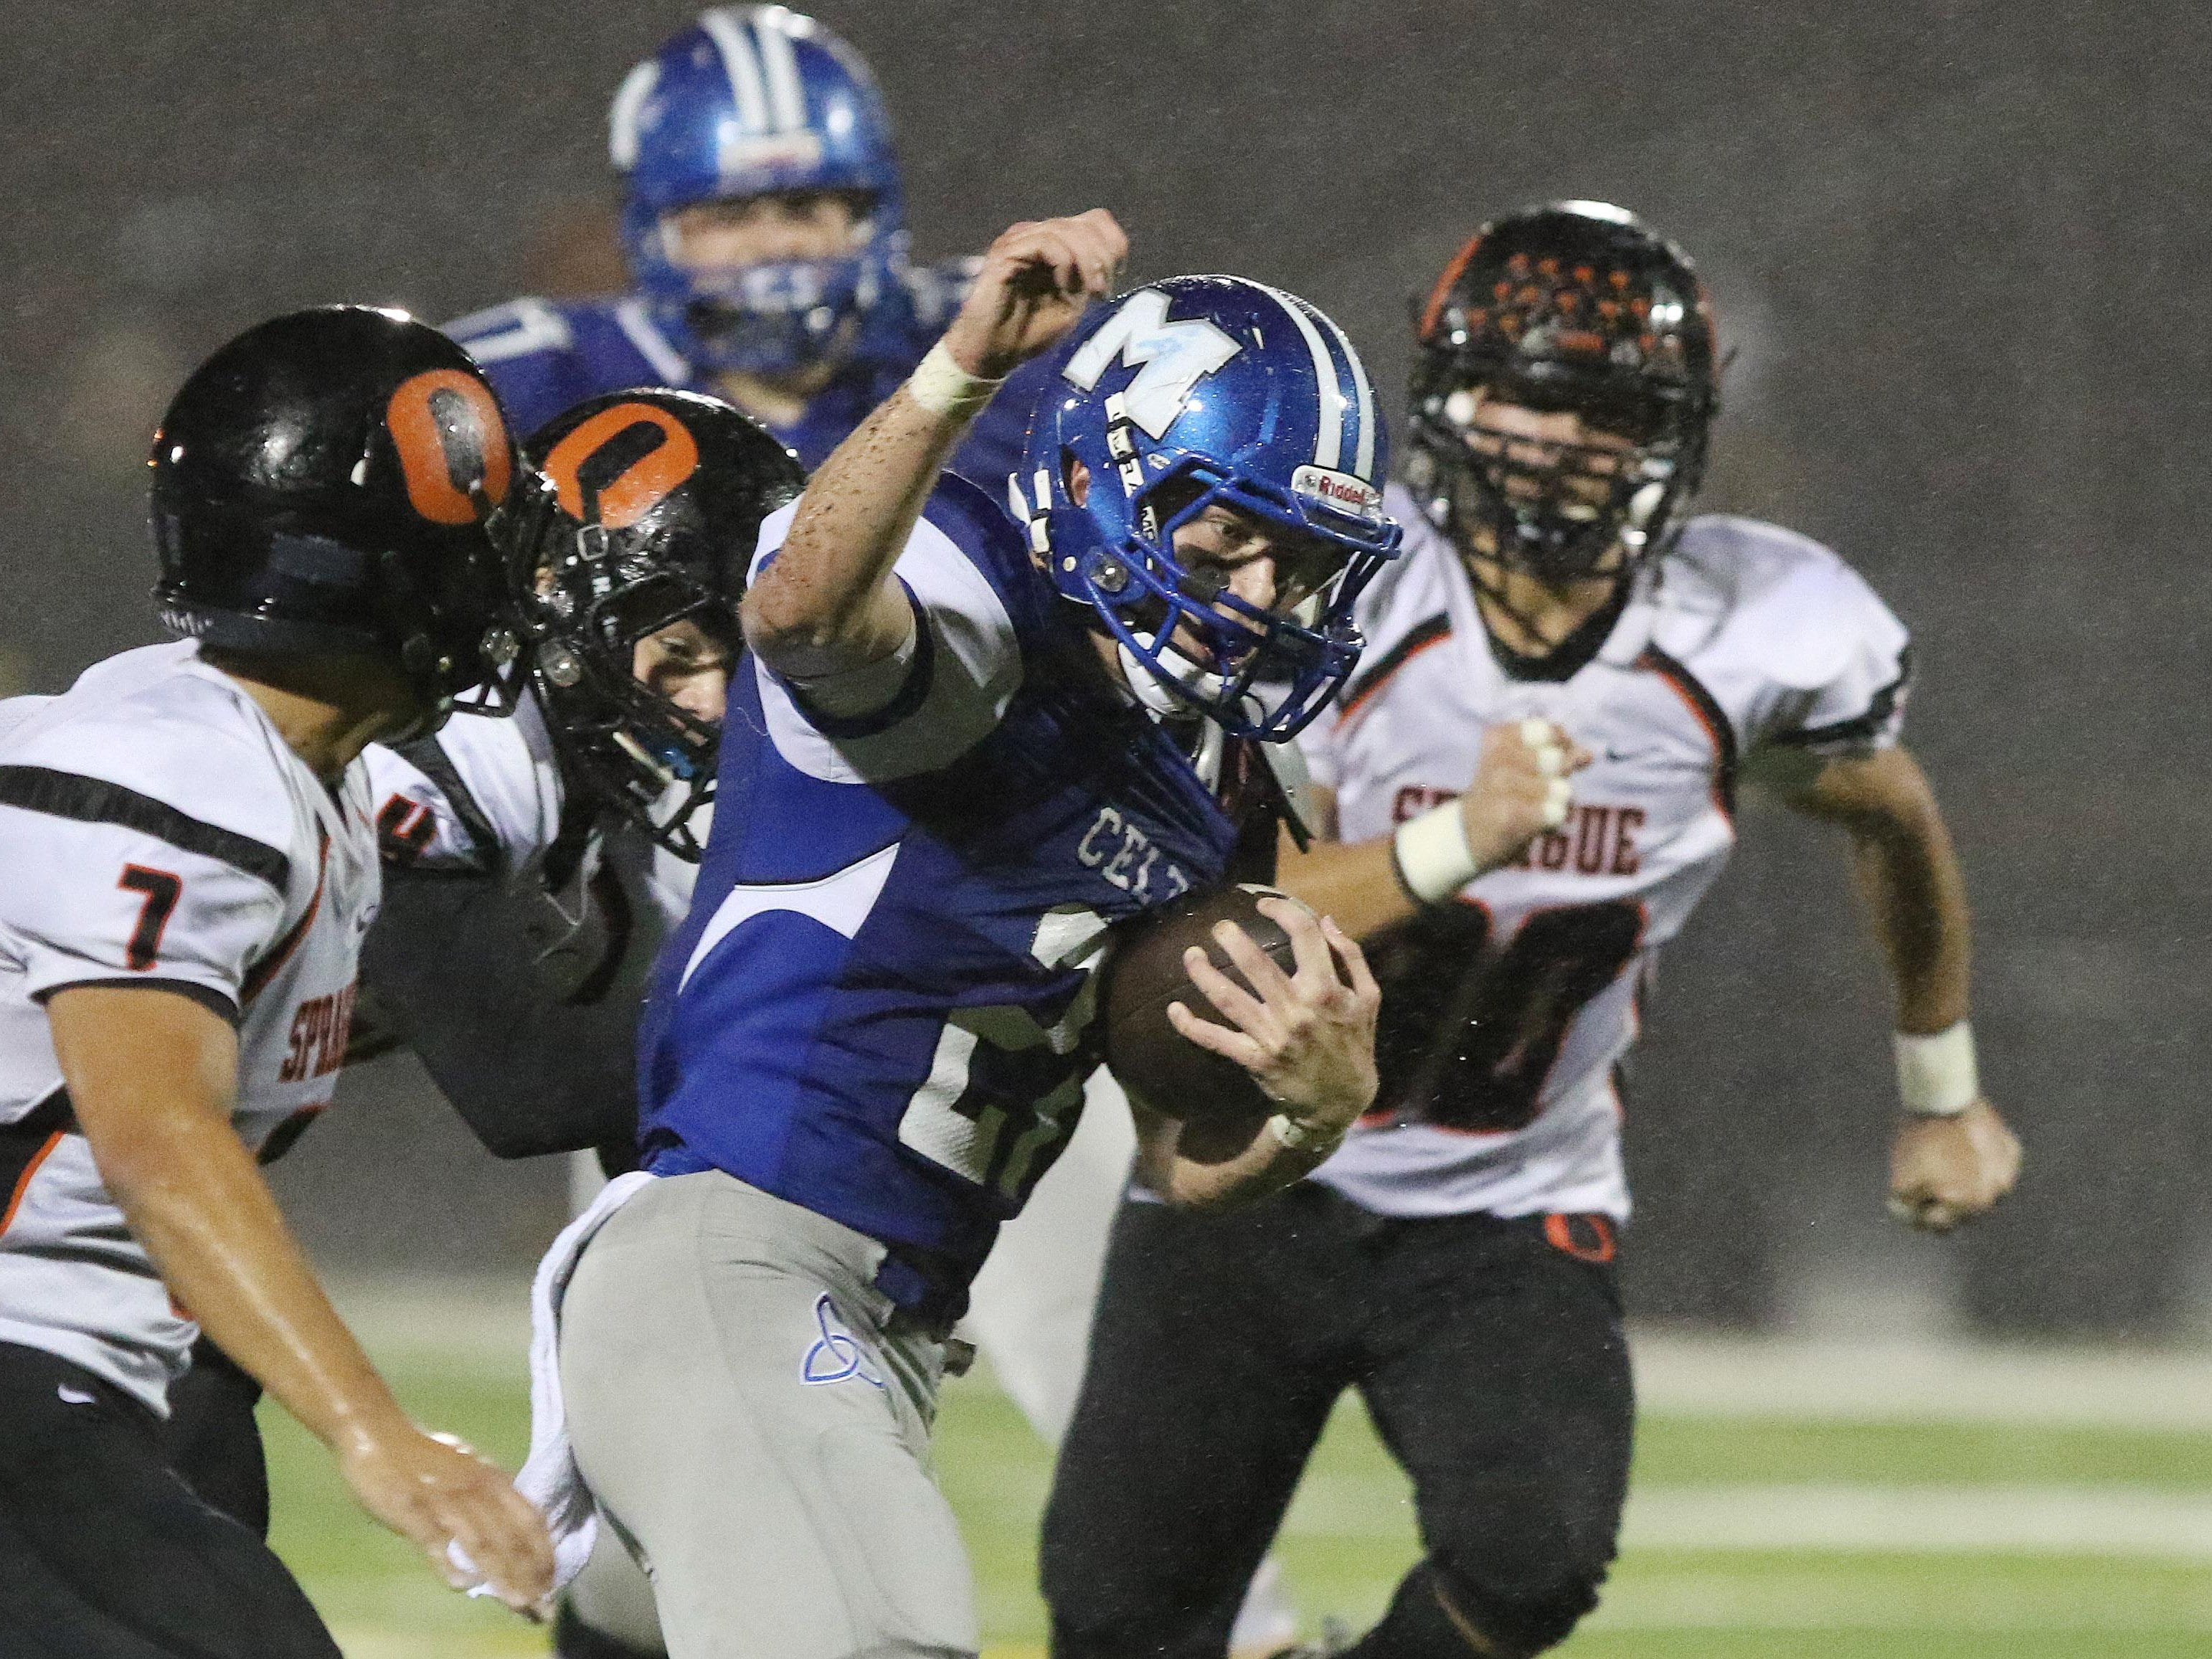 Sprague defenders surround McNary's Brady Sparks in a Greater Valley Conference game Friday, Oct. 30, 2015.